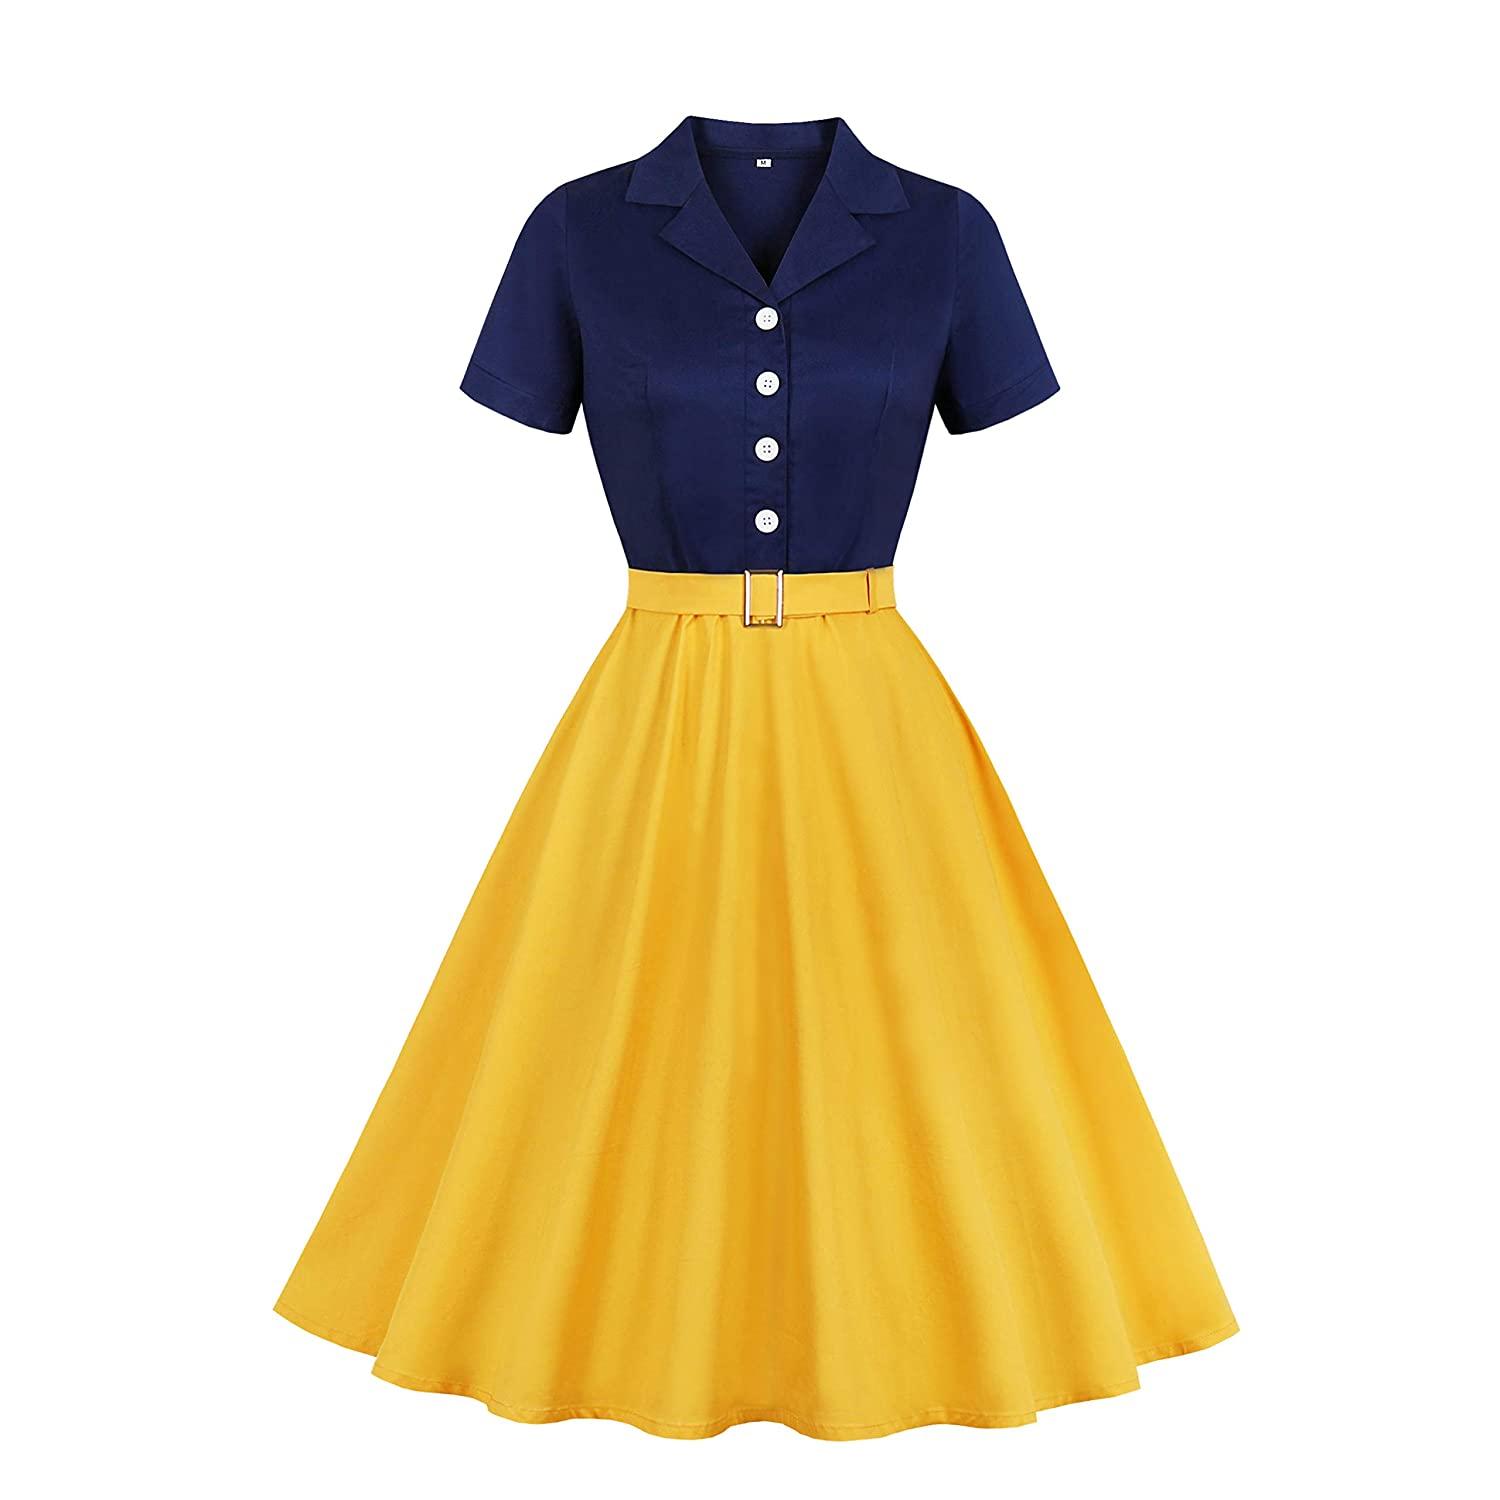 Vintage Shirtwaist Dress History Wellwits Womens Sailor Navy Yellow Halloween Princess Vintage Shirt Dress $22.98 AT vintagedancer.com